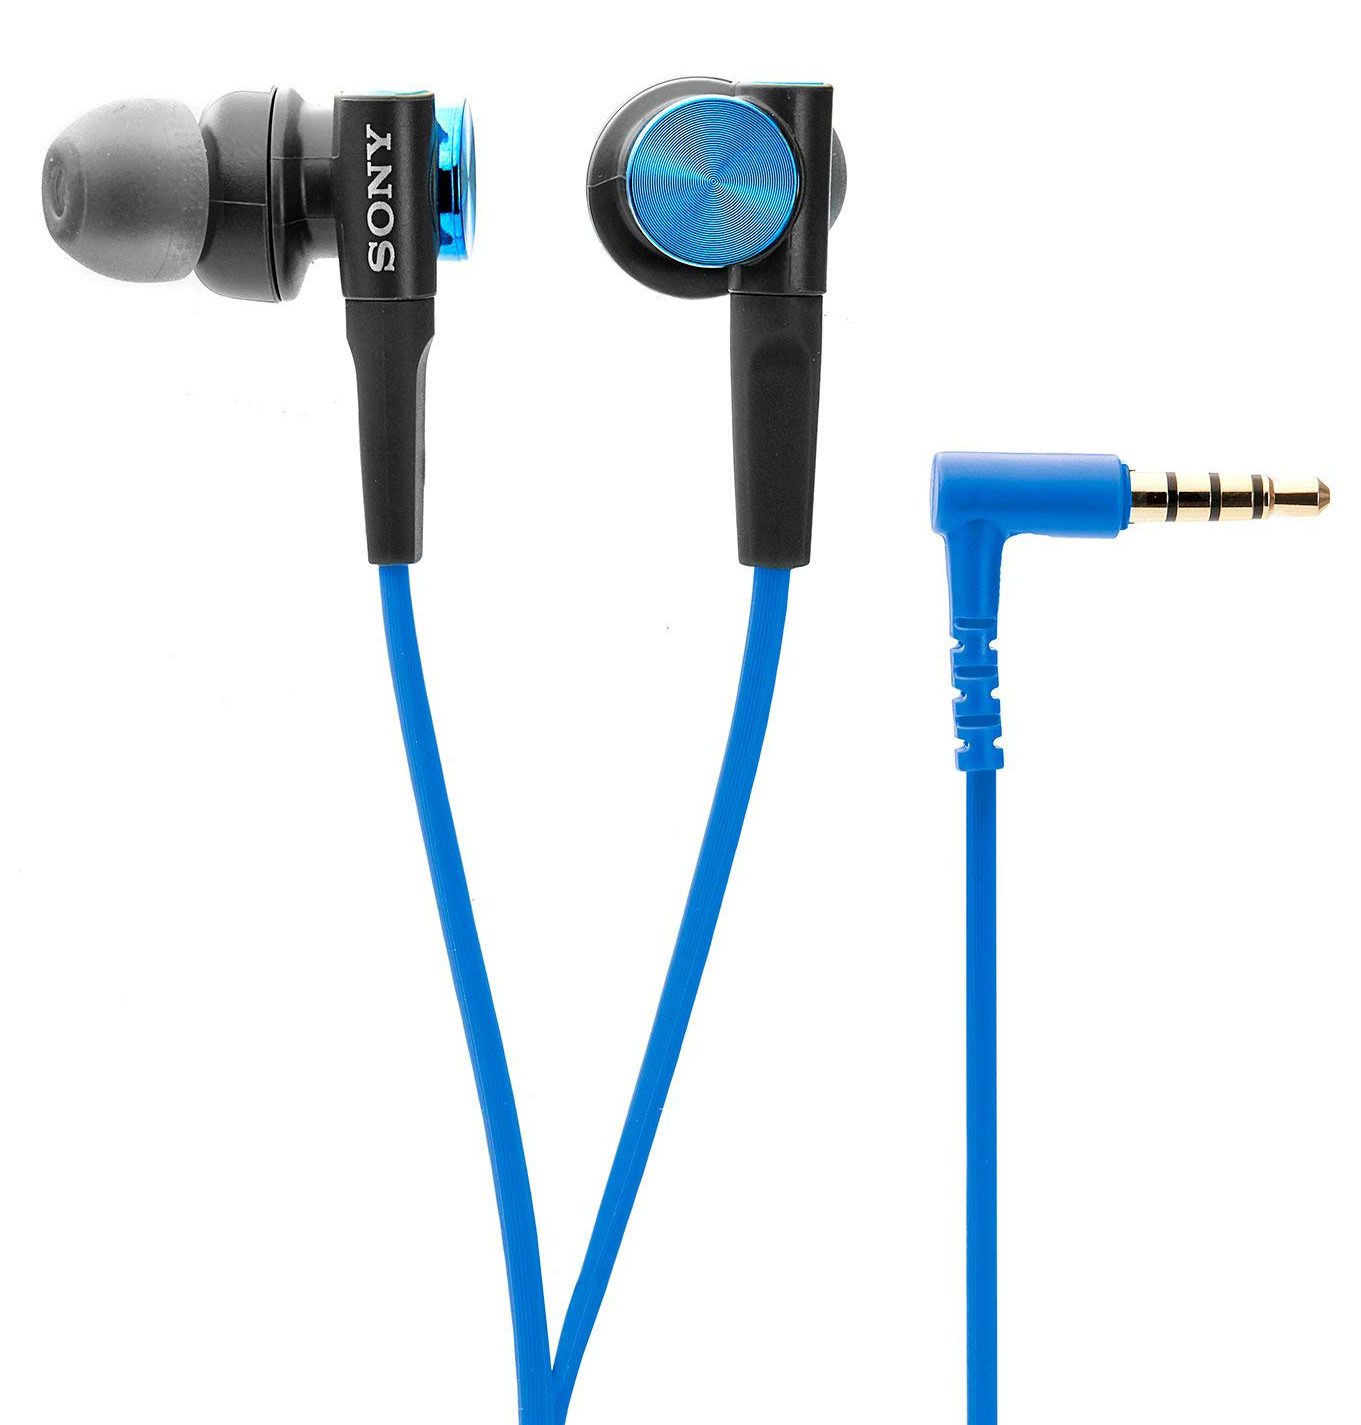 Sony earbud amazon 1